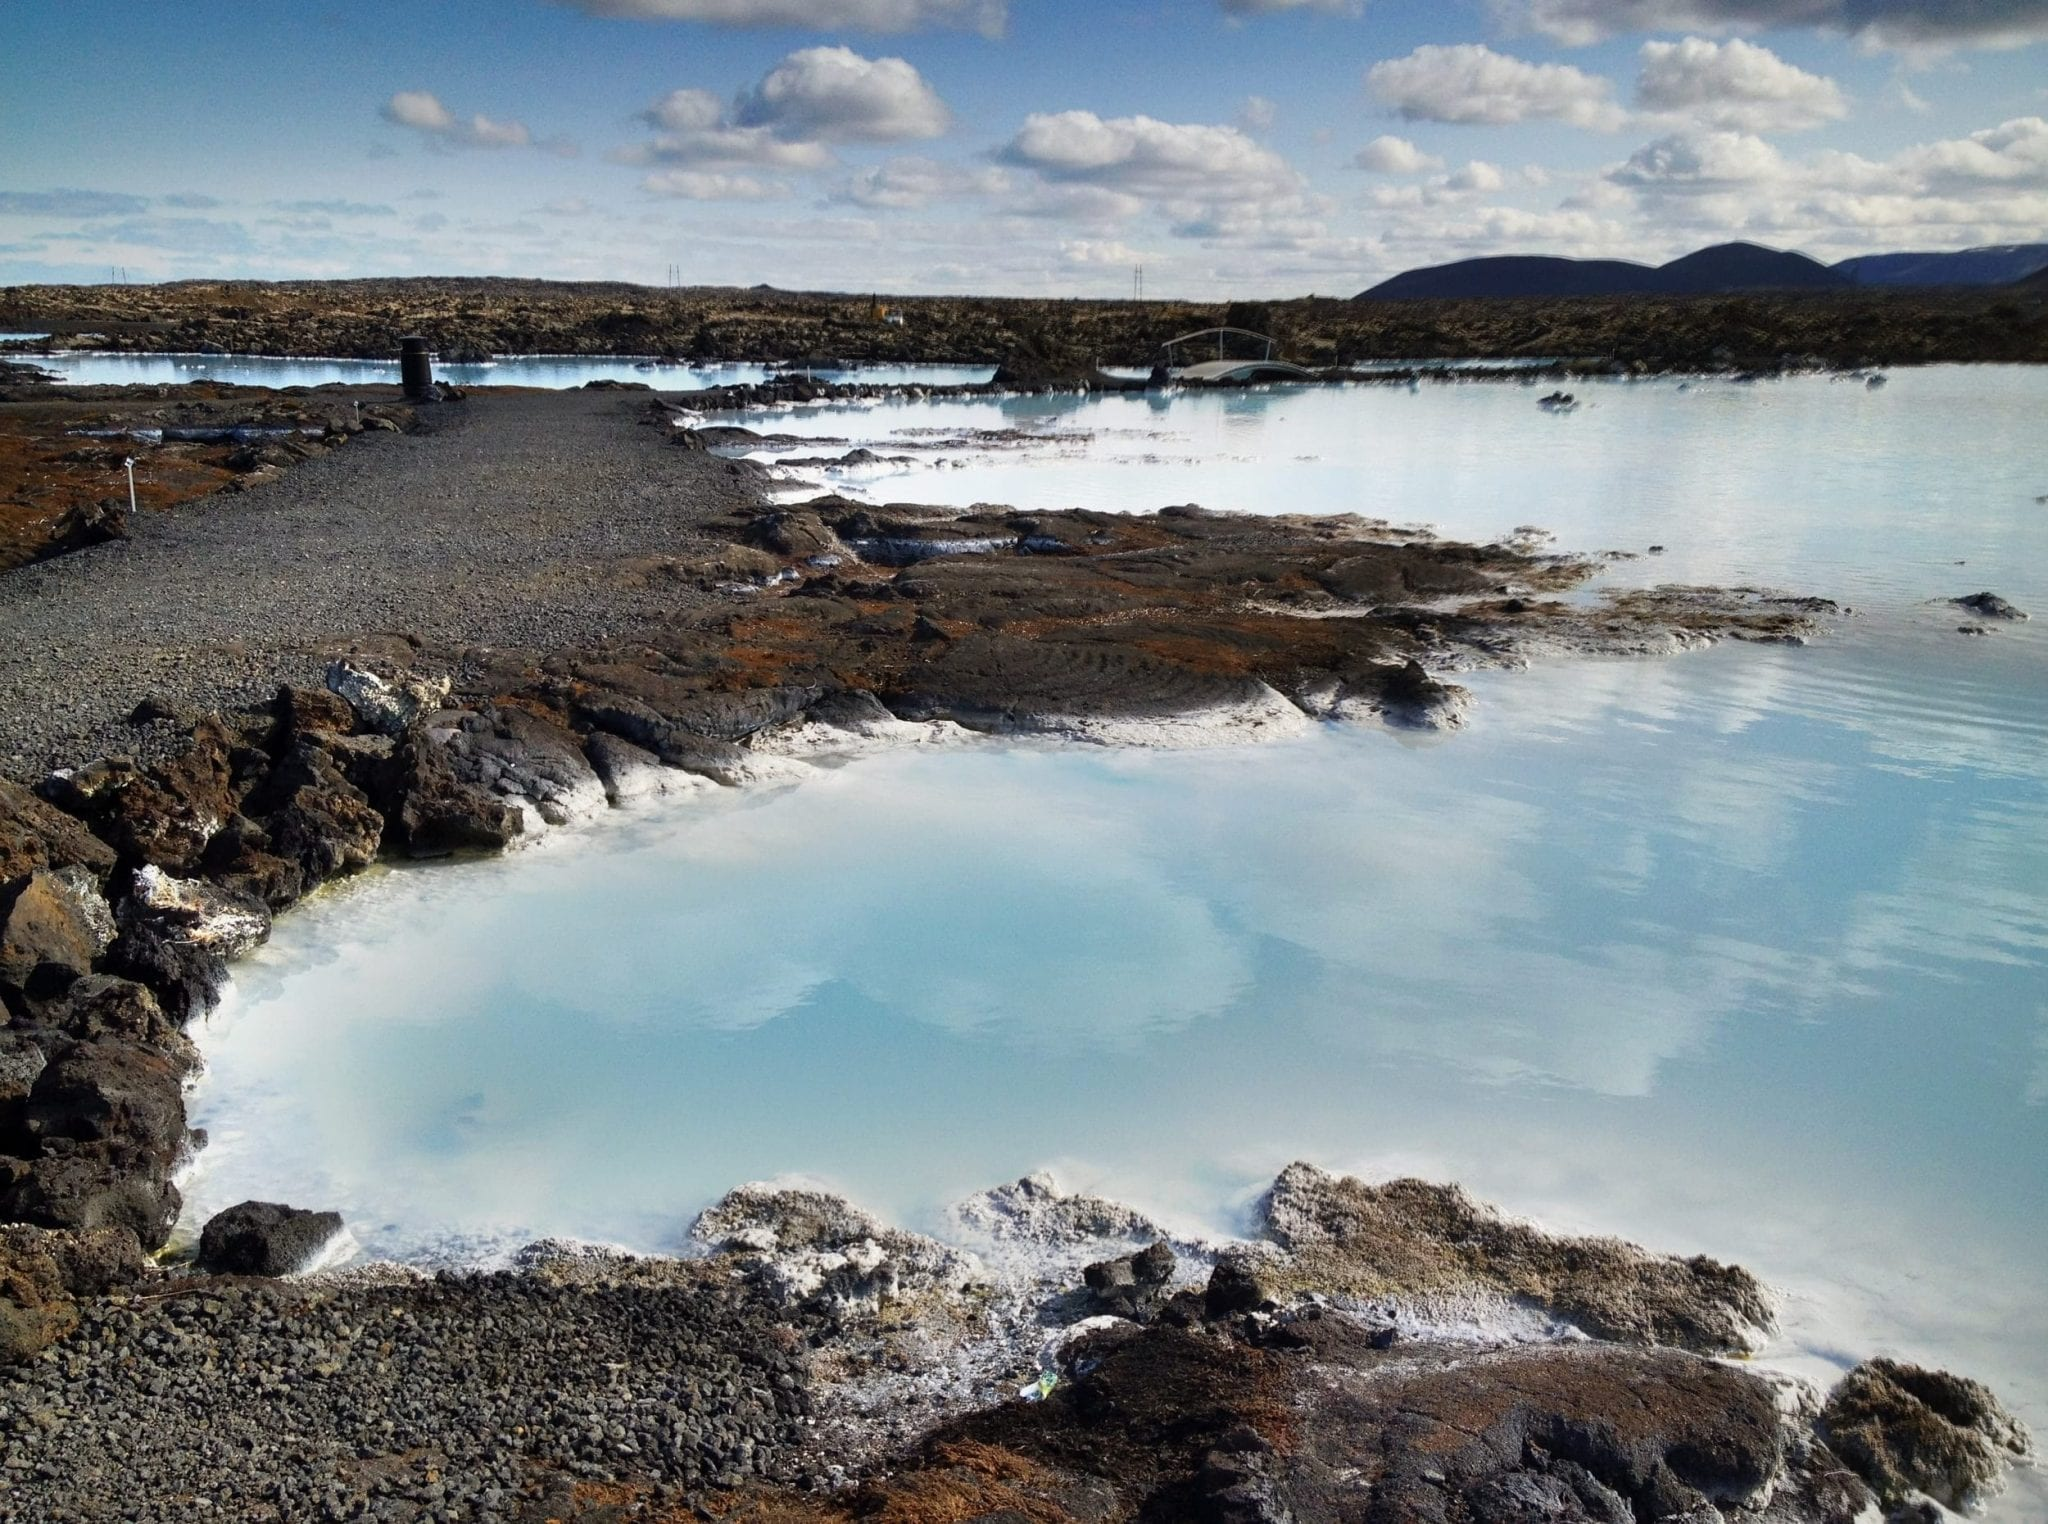 The milky Blue Lagoon in Iceland, edged by rocky gray coastline, underneath a blue sky.